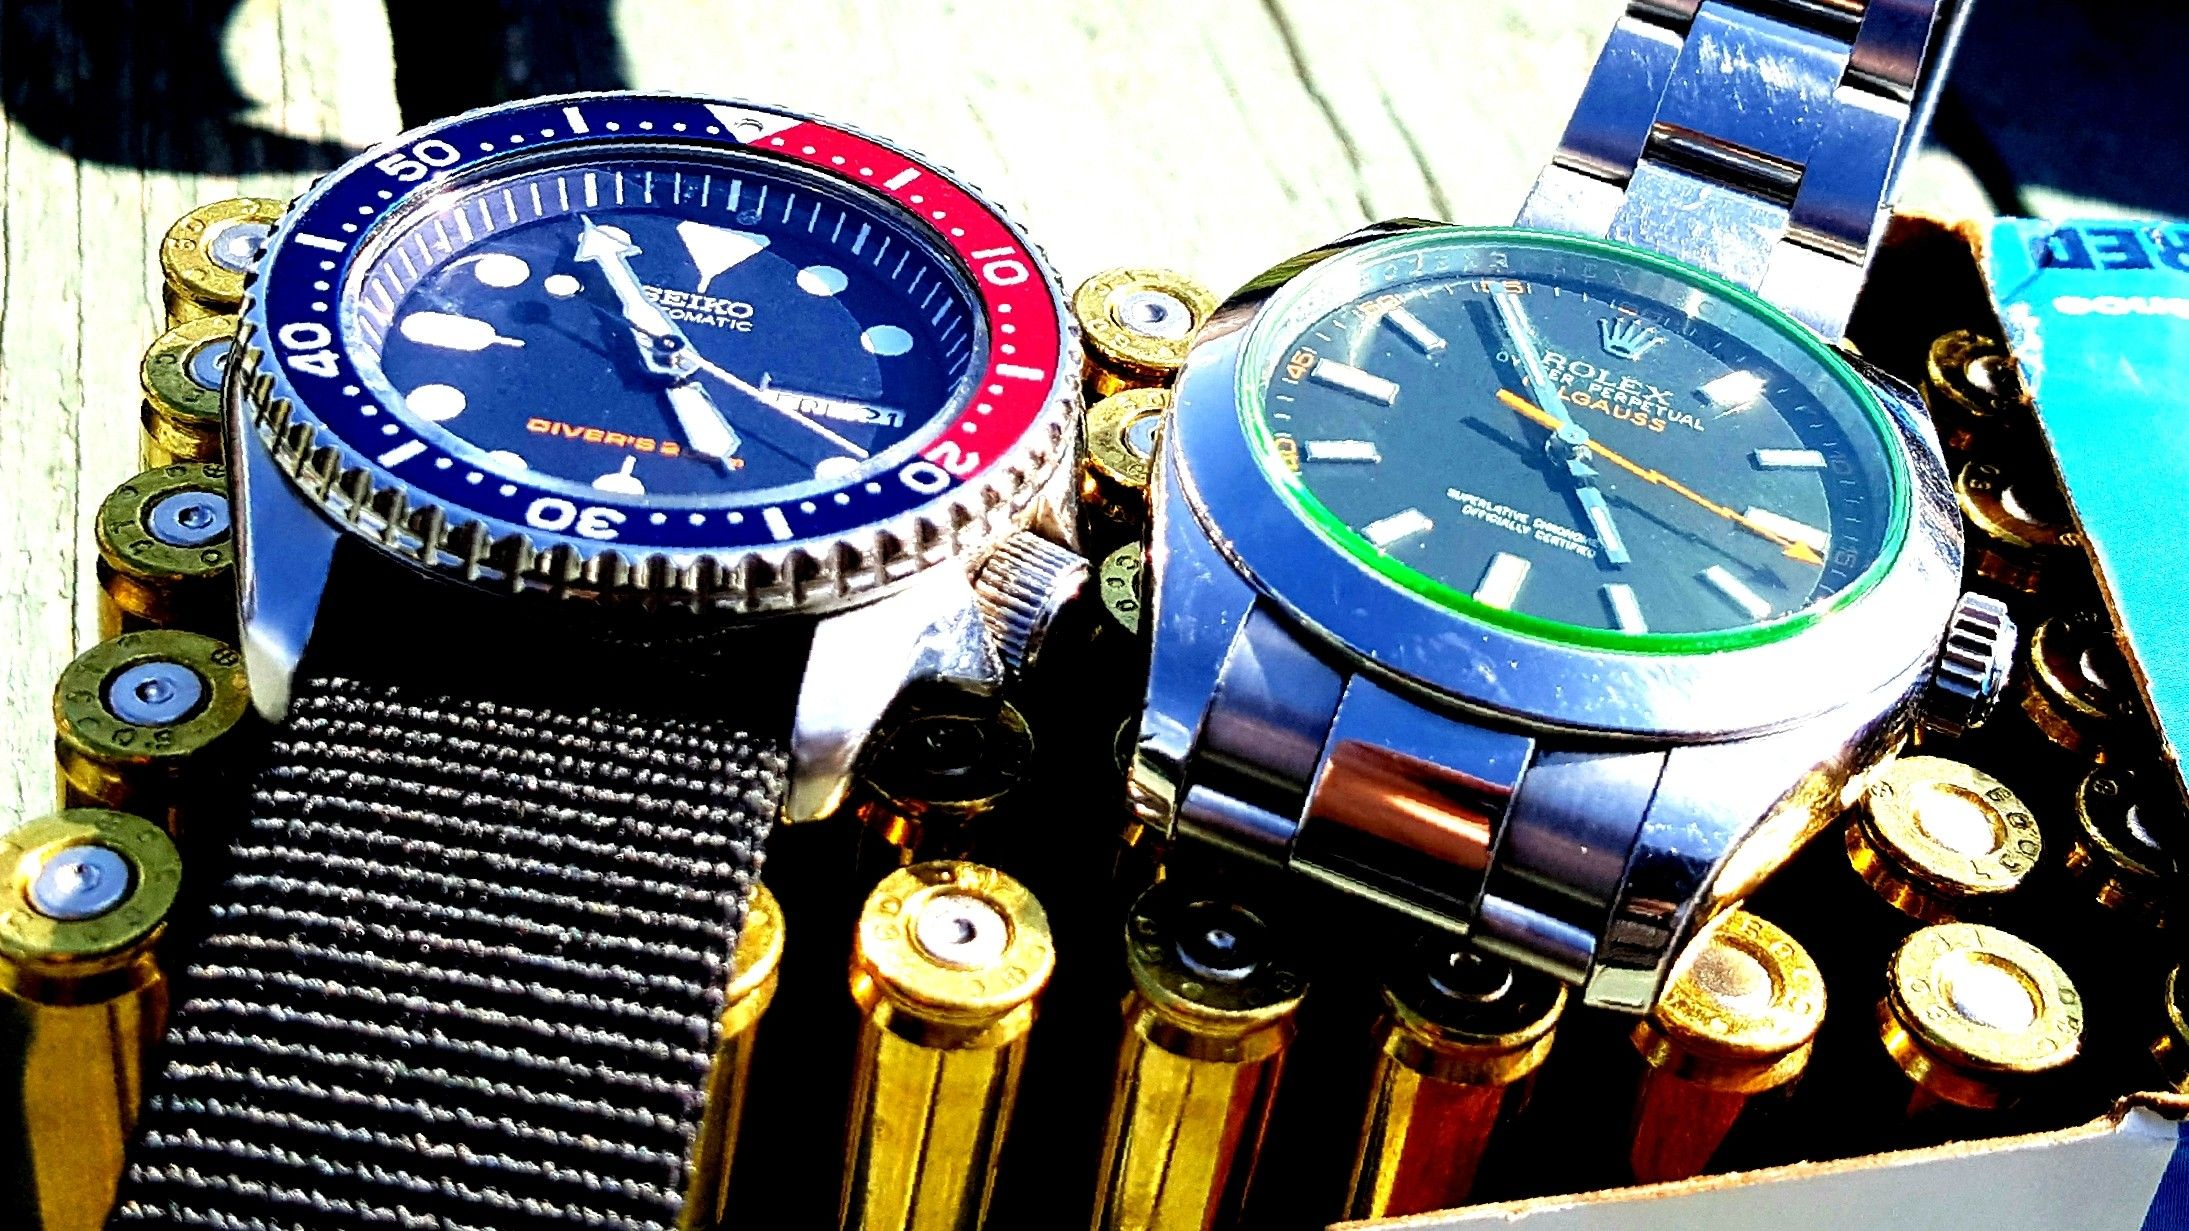 m and say iconic about comments consolidated it my said of sinn recent watches acquisition the one sure what t all already can this most sotc hasn rolex time freshly i s not that doxa r seiko been omega